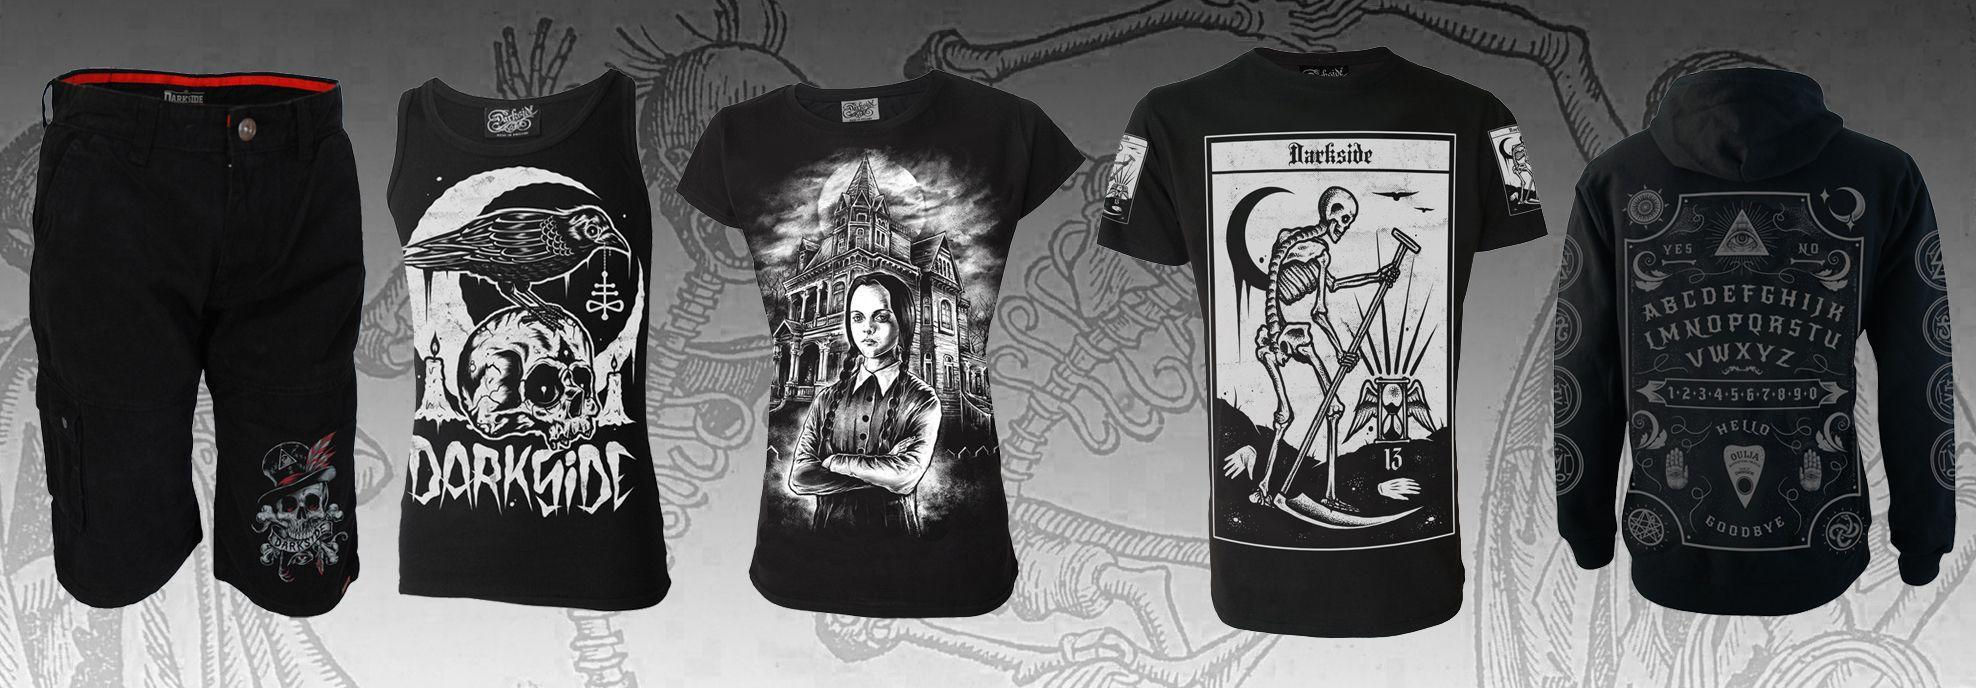 View Our Range Of Darkside Clothing